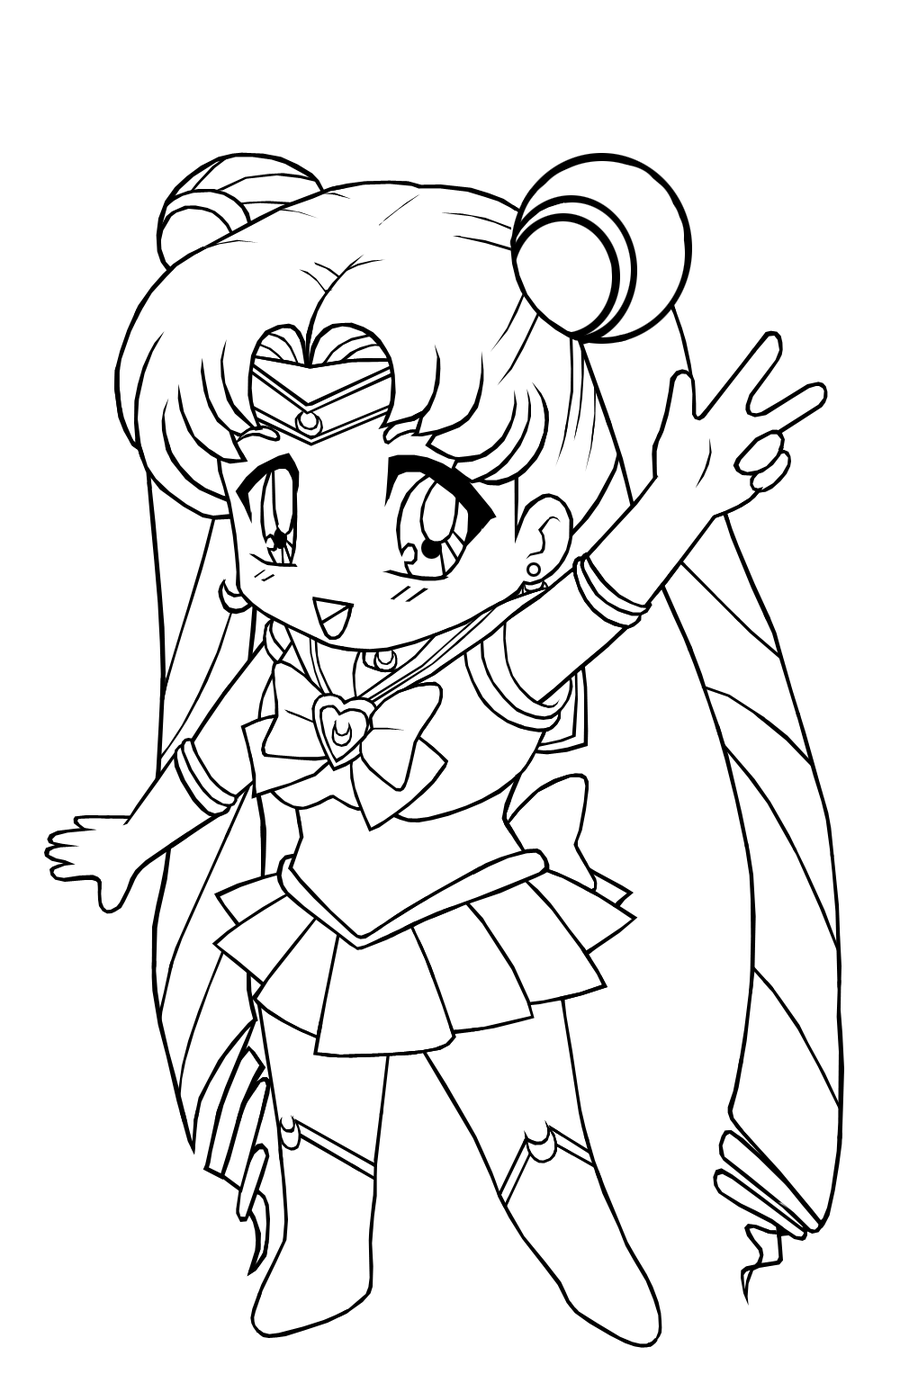 anime chibi coloring pages chibi cookie girl coloring page free printable coloring coloring chibi anime pages